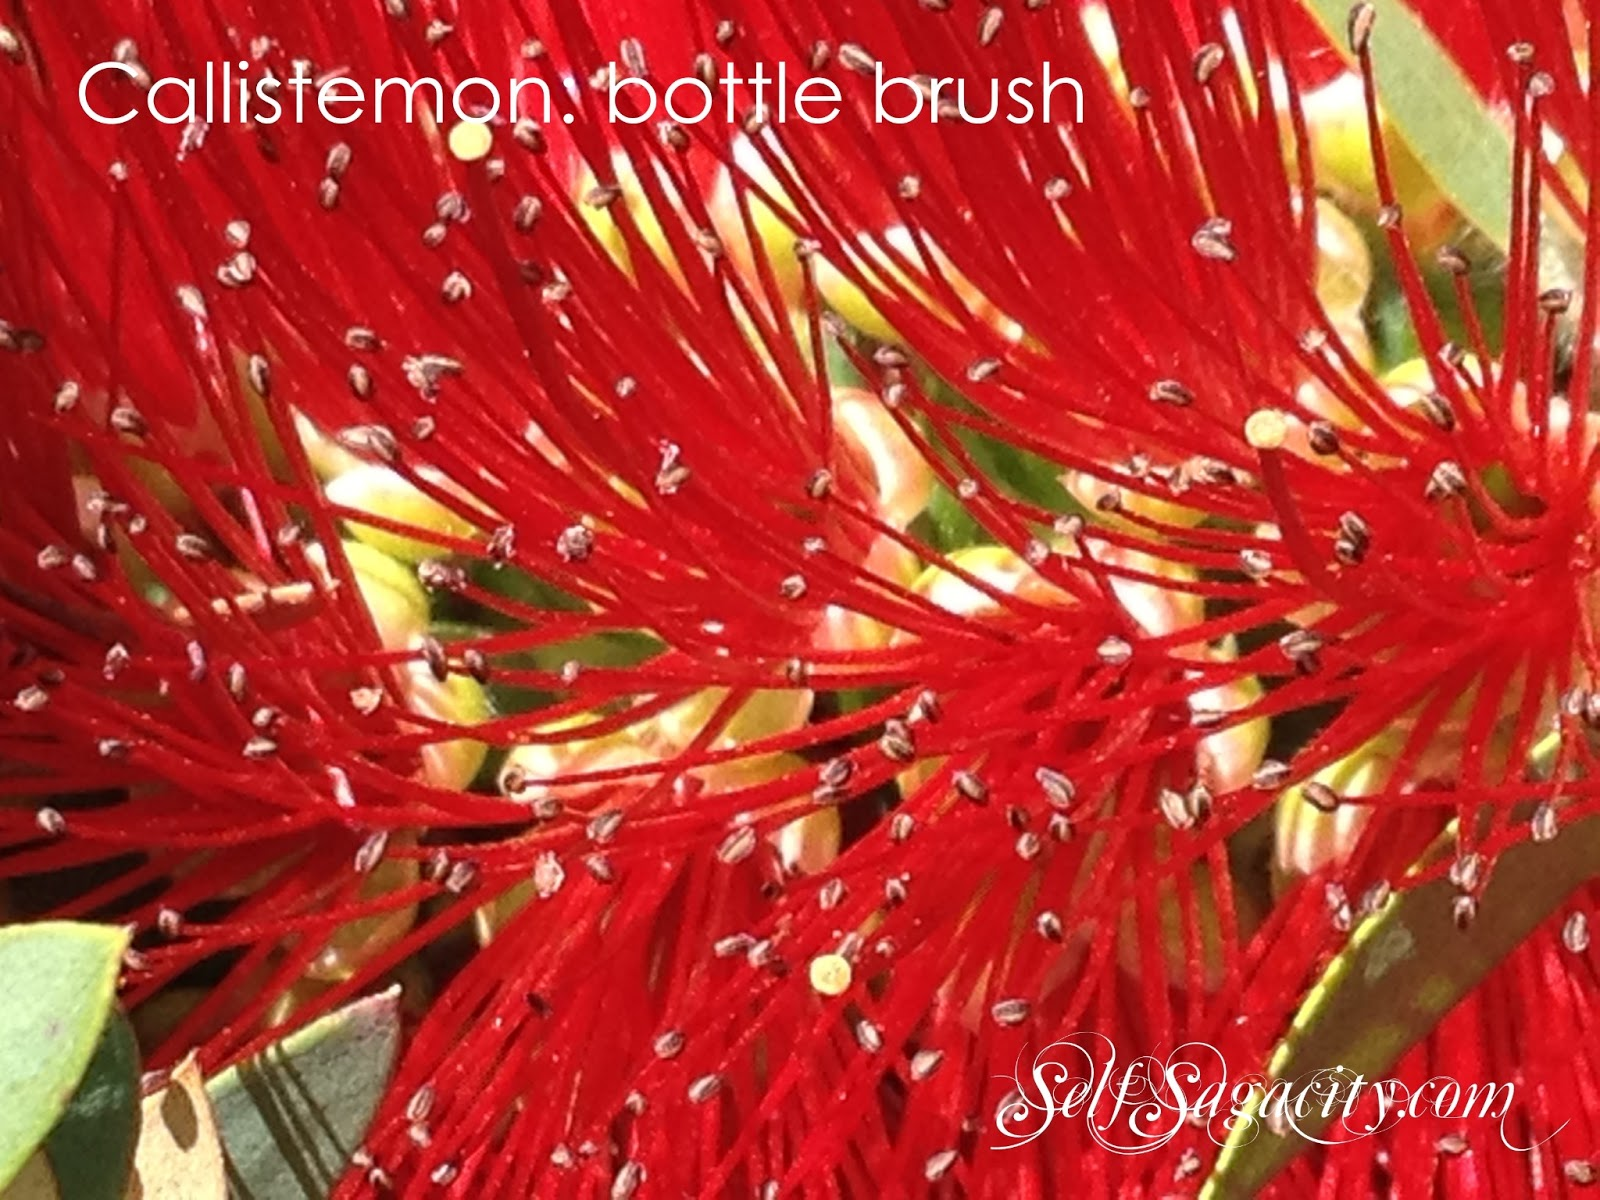 Red Callistemon: Red bottle brush flowers